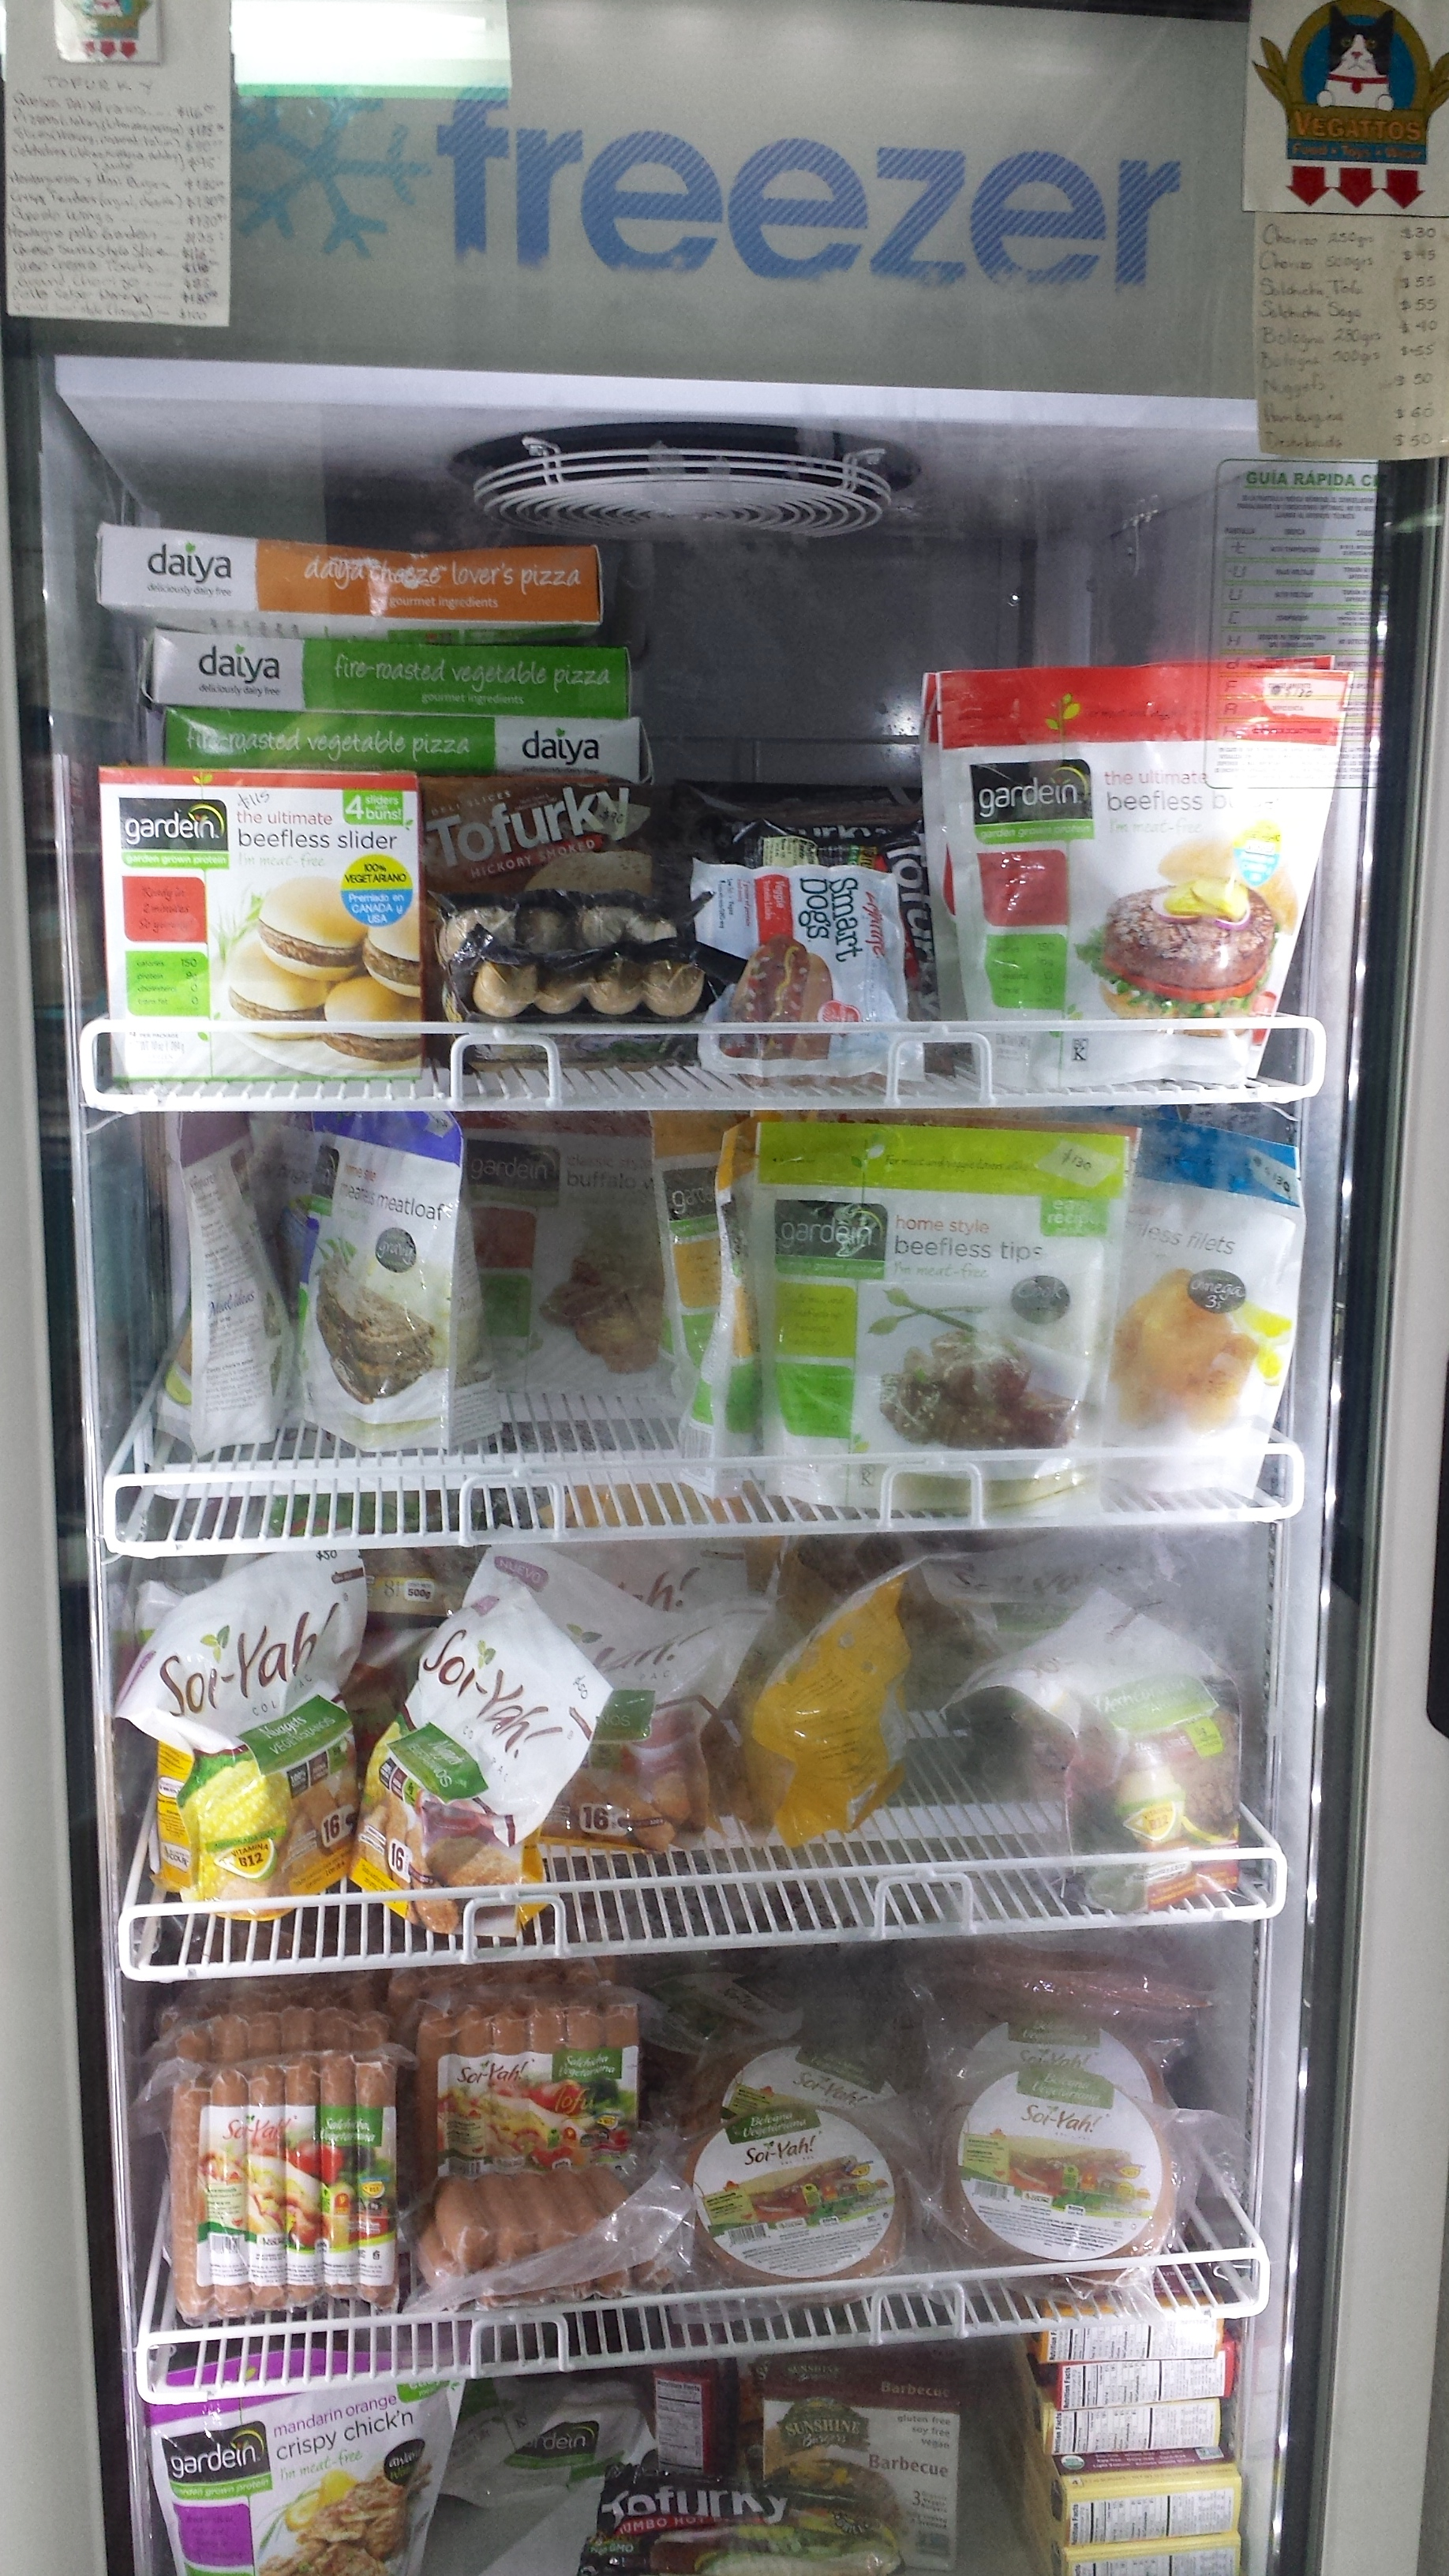 https://i1.wp.com/fatgayvegan.com/wp-content/uploads/2015/02/Freezer.jpg?fit=1836%2C3264